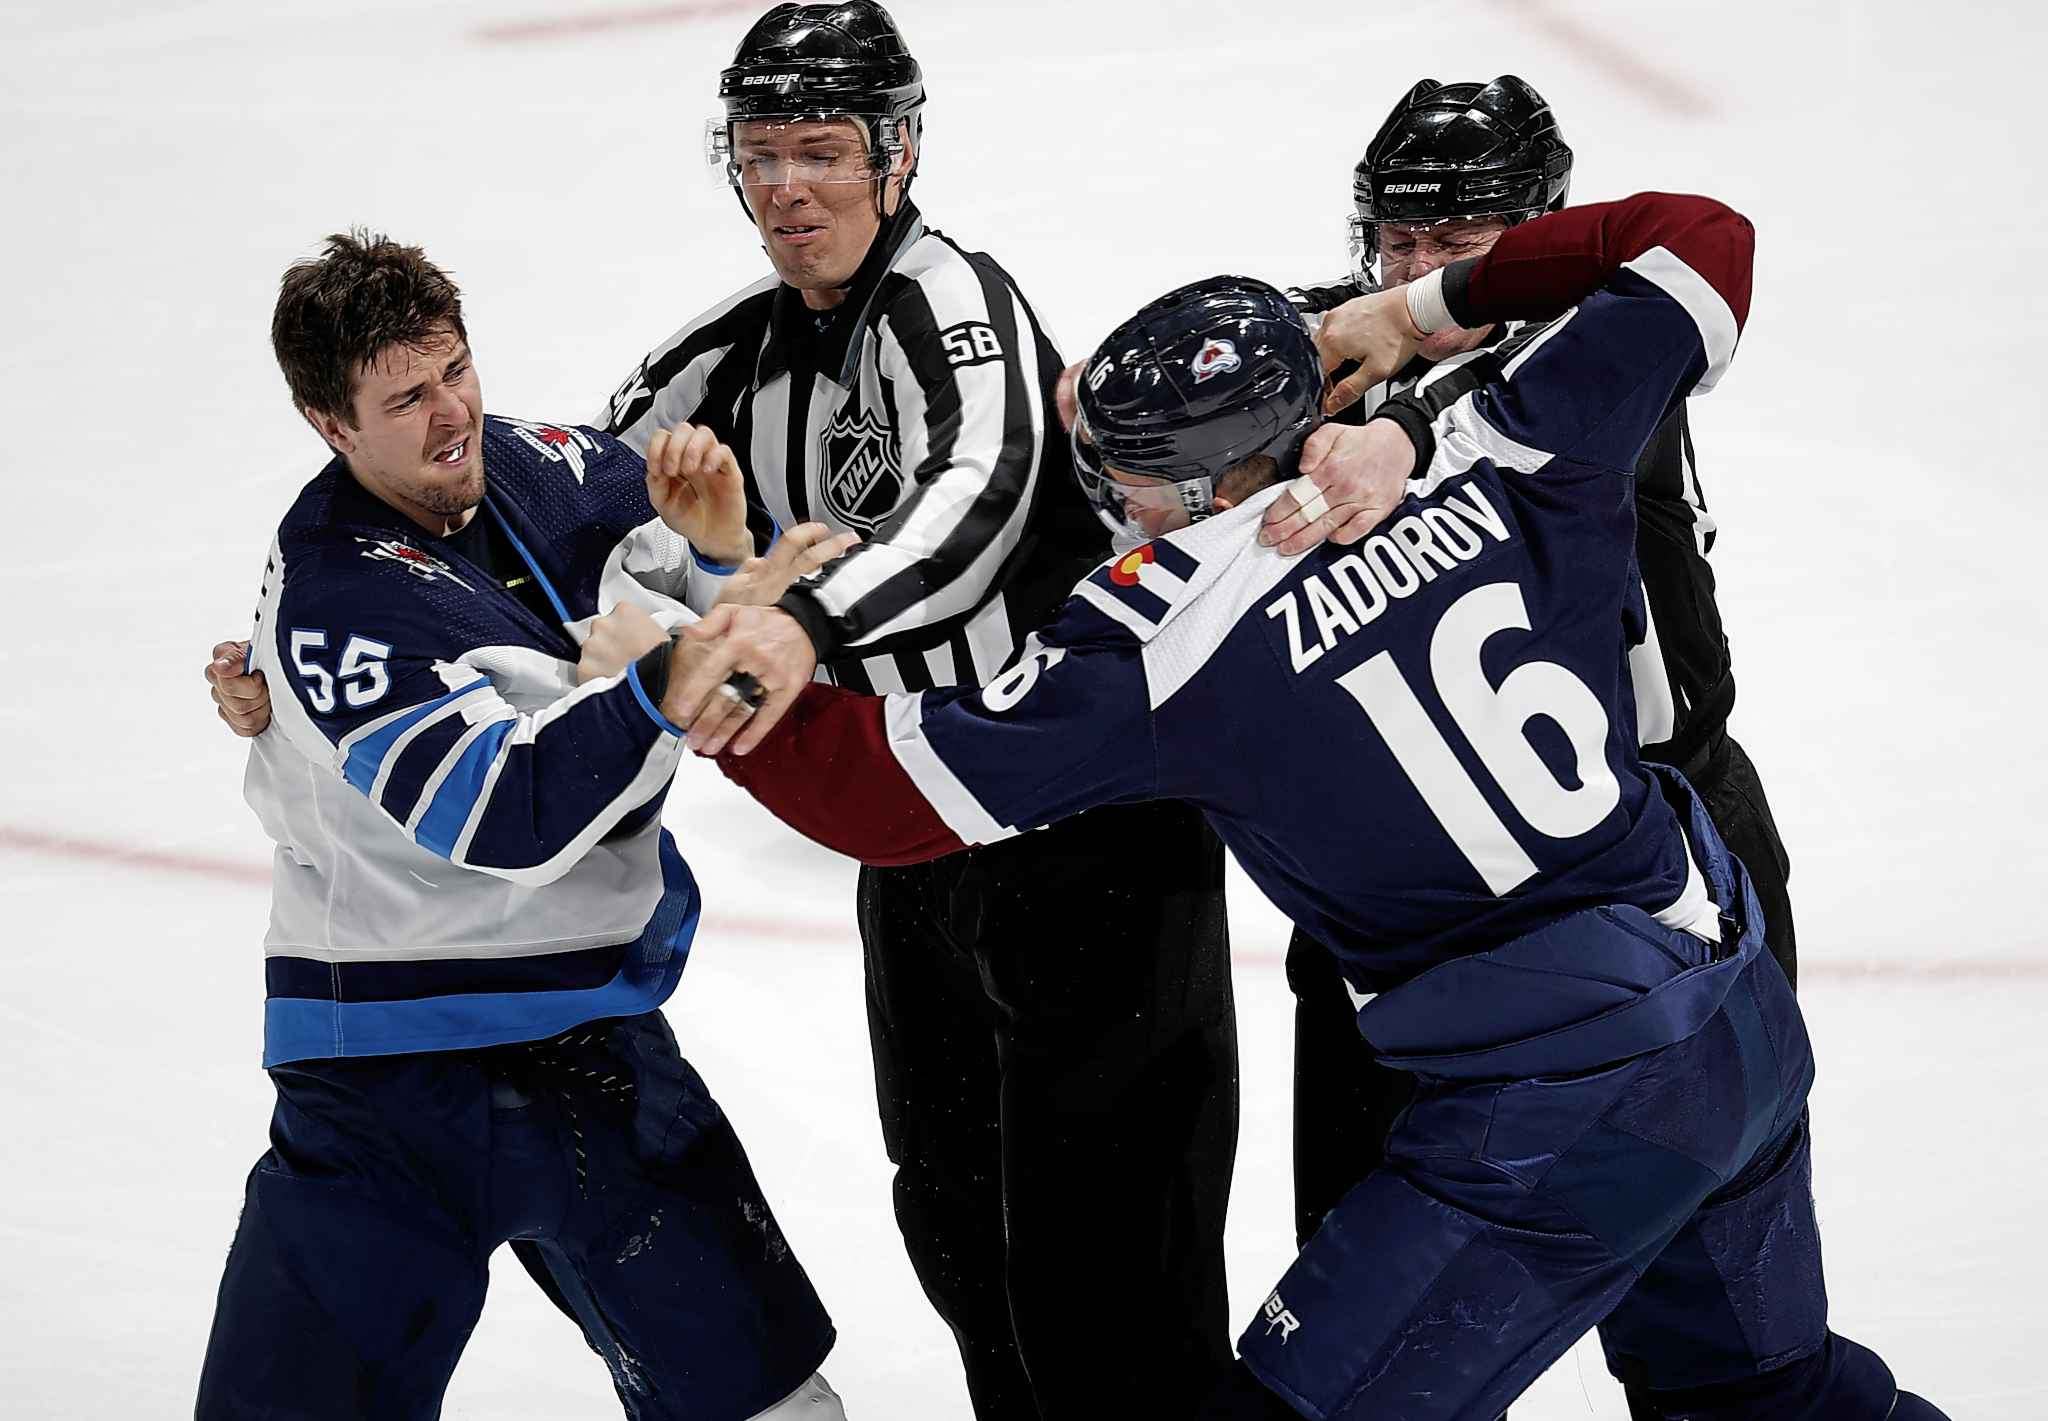 Winnipeg Jets centre Mark Scheifele, left, is restrained by the linesmen as Colorado Avalanche defenceman Nikita Zadorov squares off to fight in the third period.